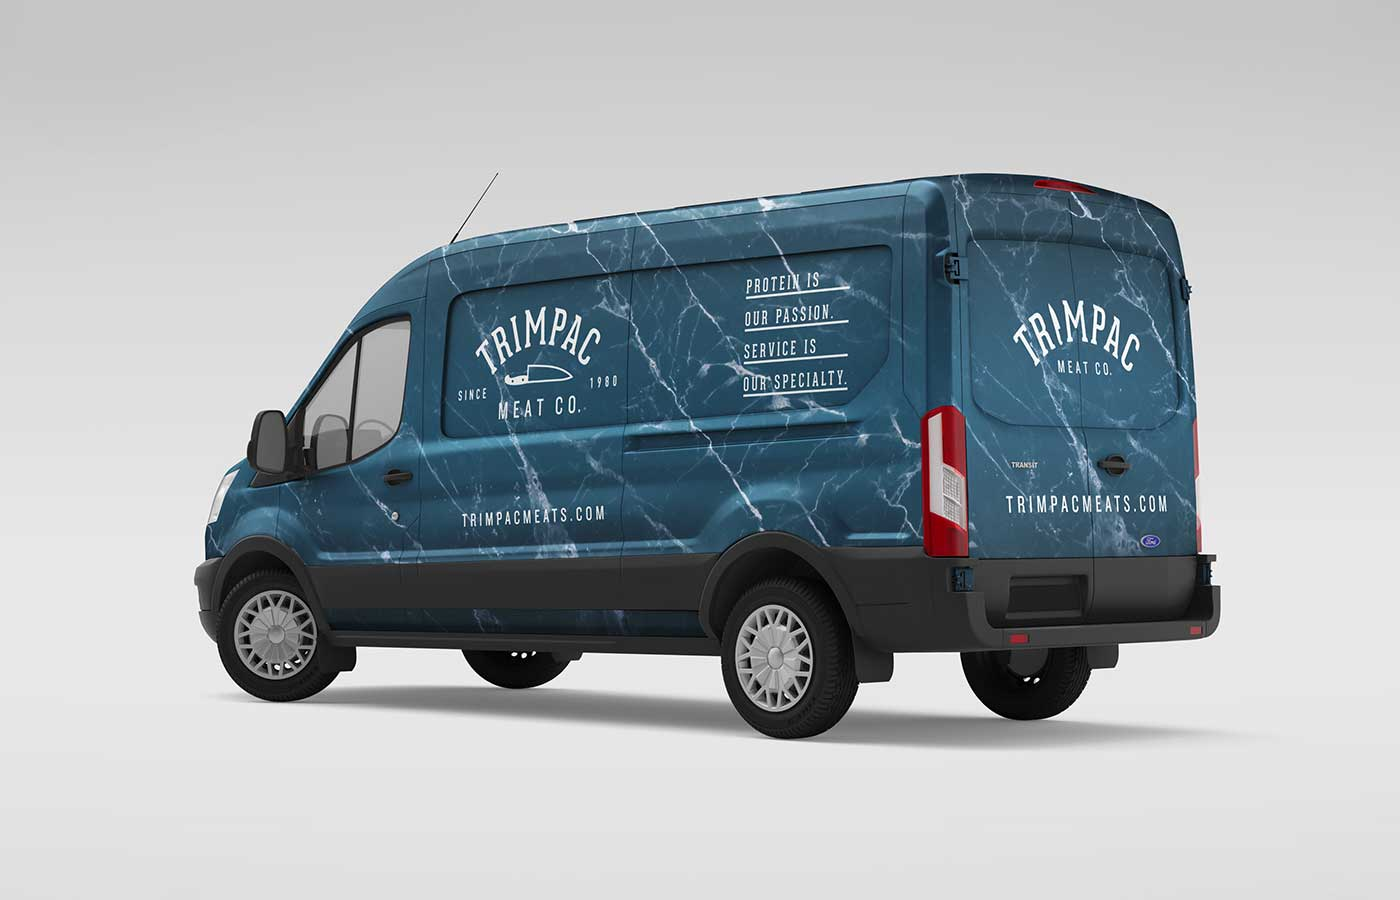 covetdesign_logo-design_branding_package-design_graphic-design_vancouver_work_wide_trimpac-truck